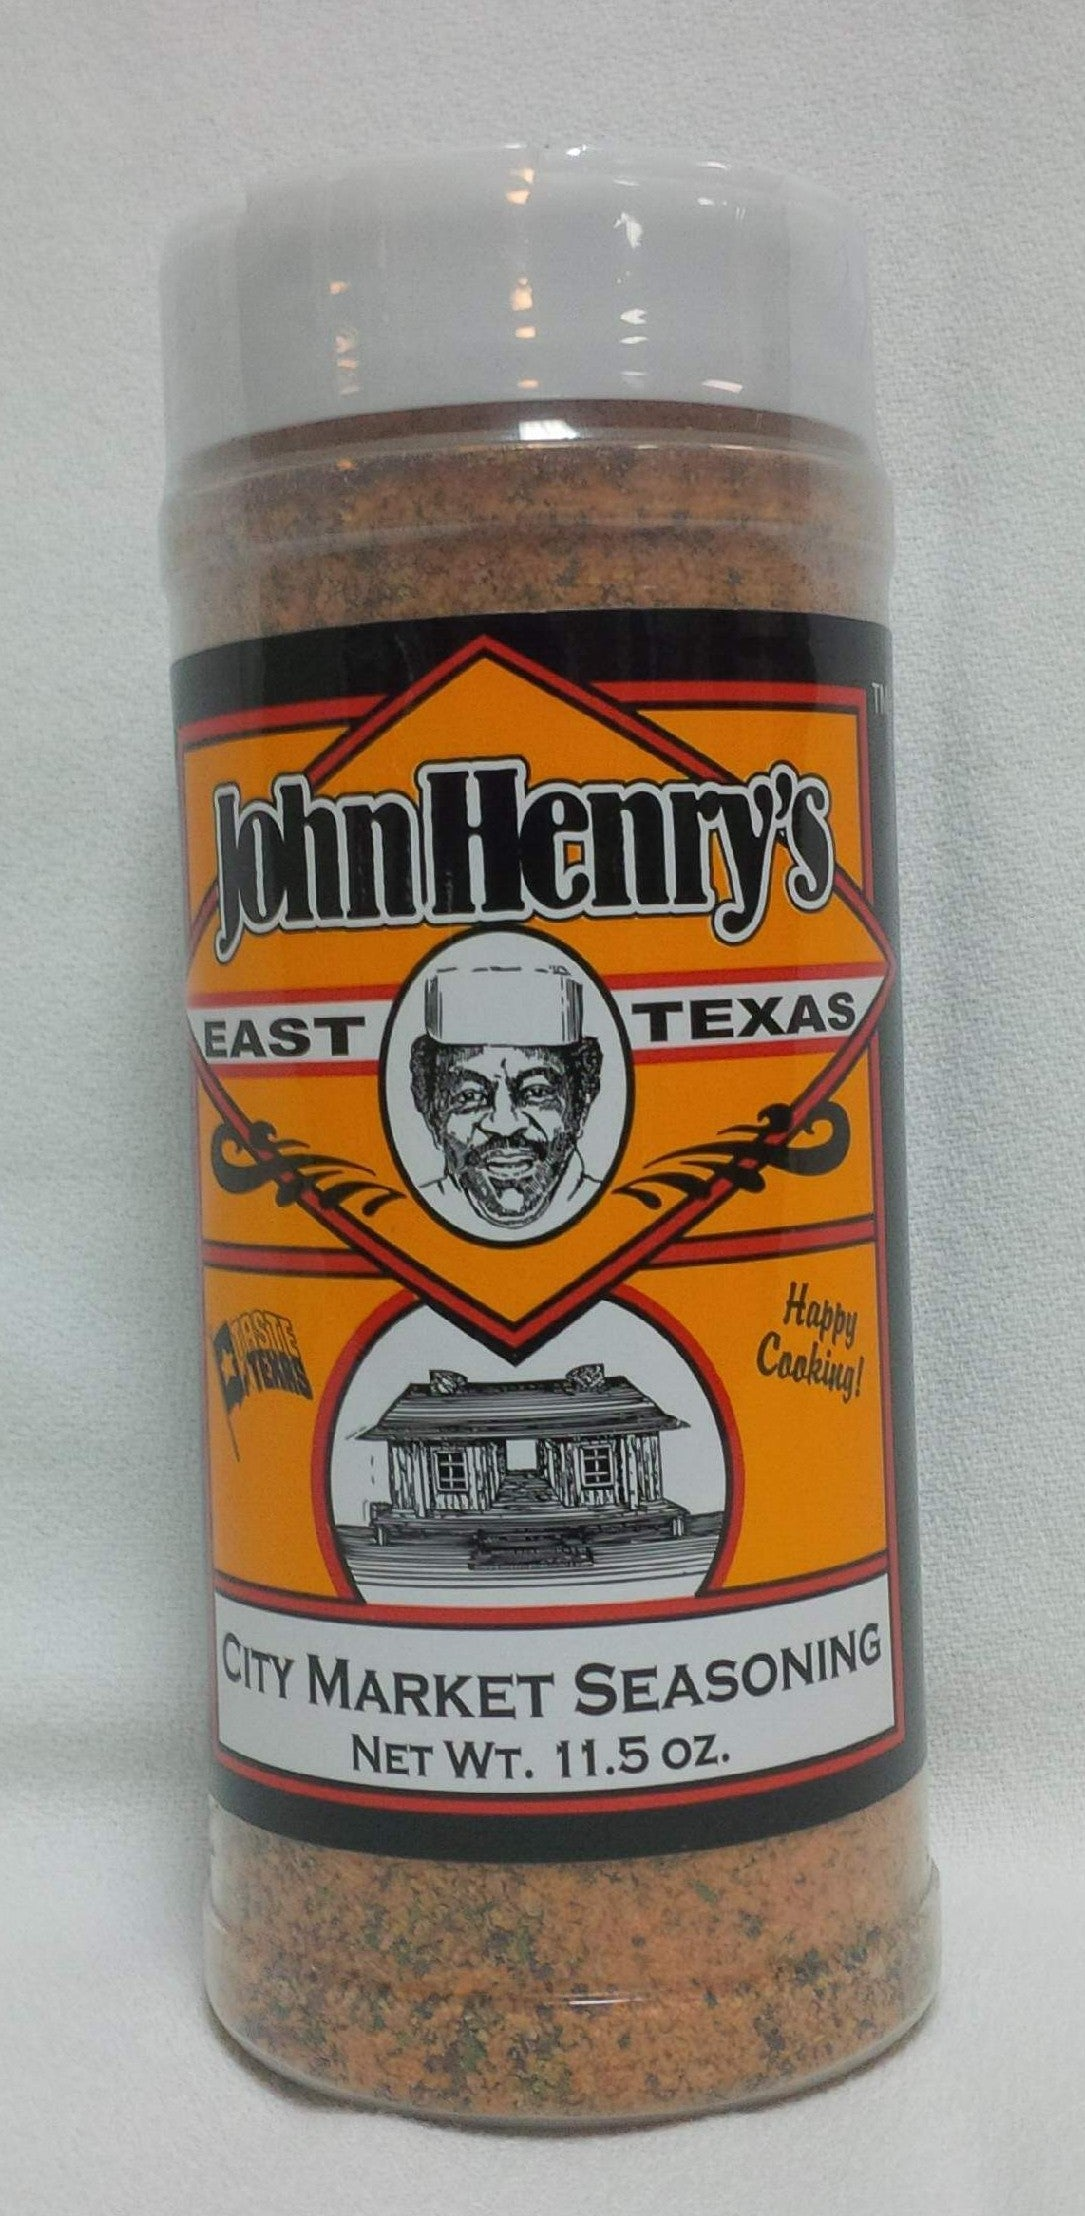 John Henry's City Market Seasoning